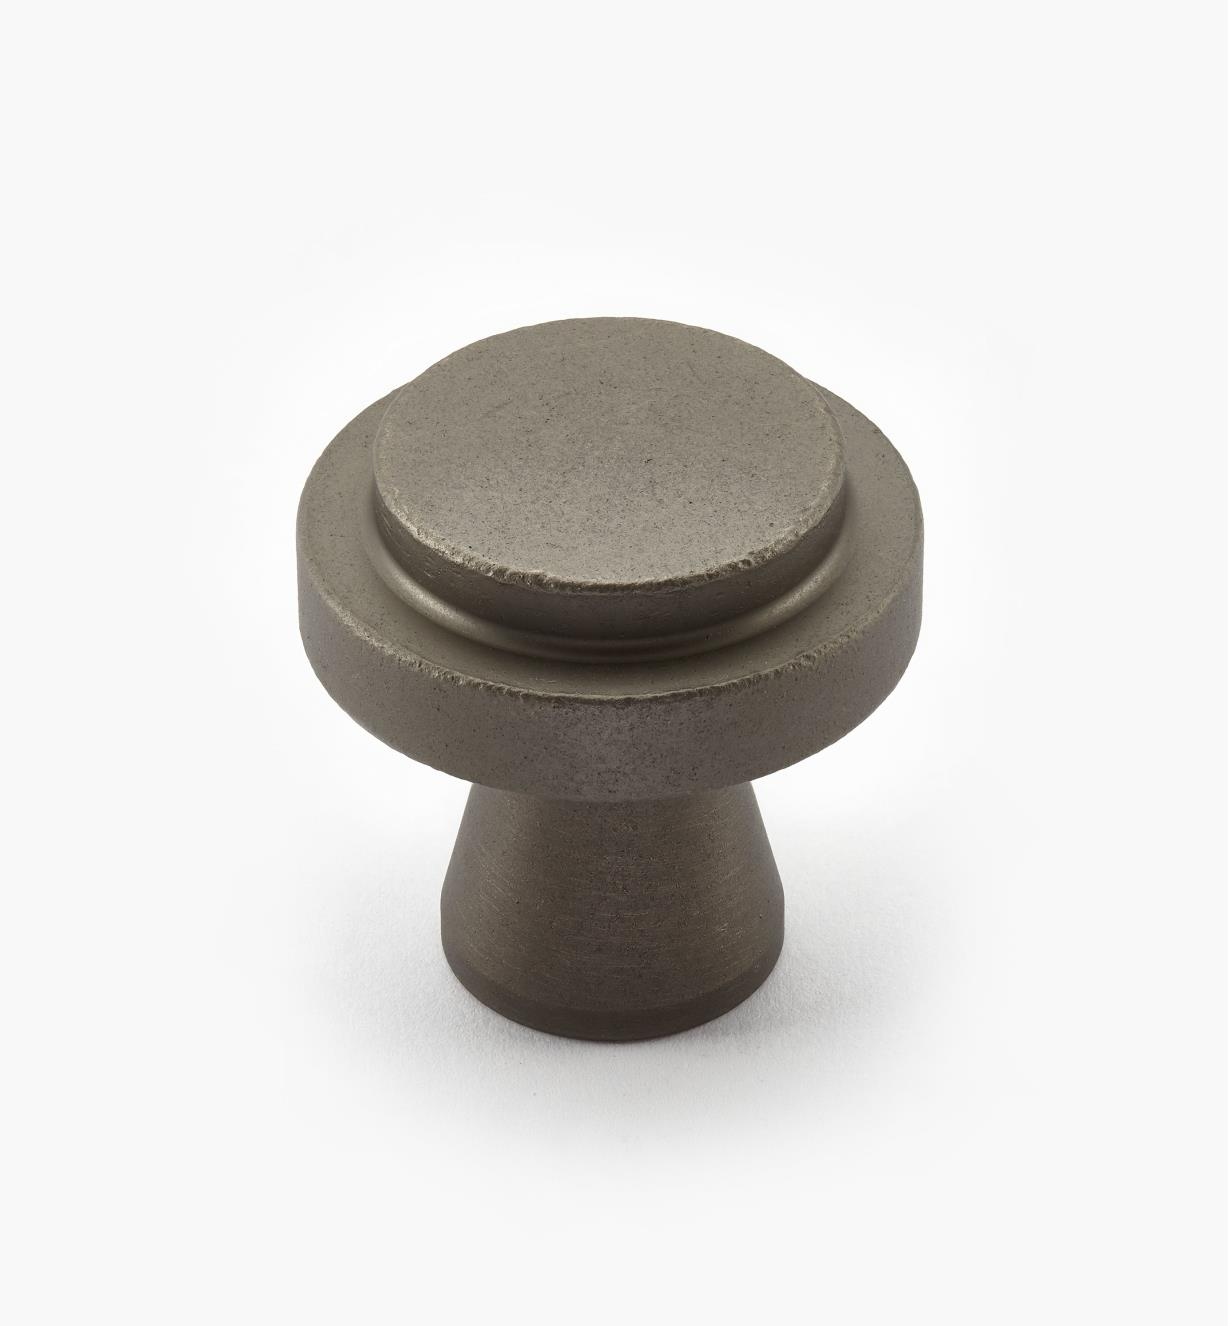 00W0724 - Concerto Hardware - 35mm x 35mm Pewter Knob